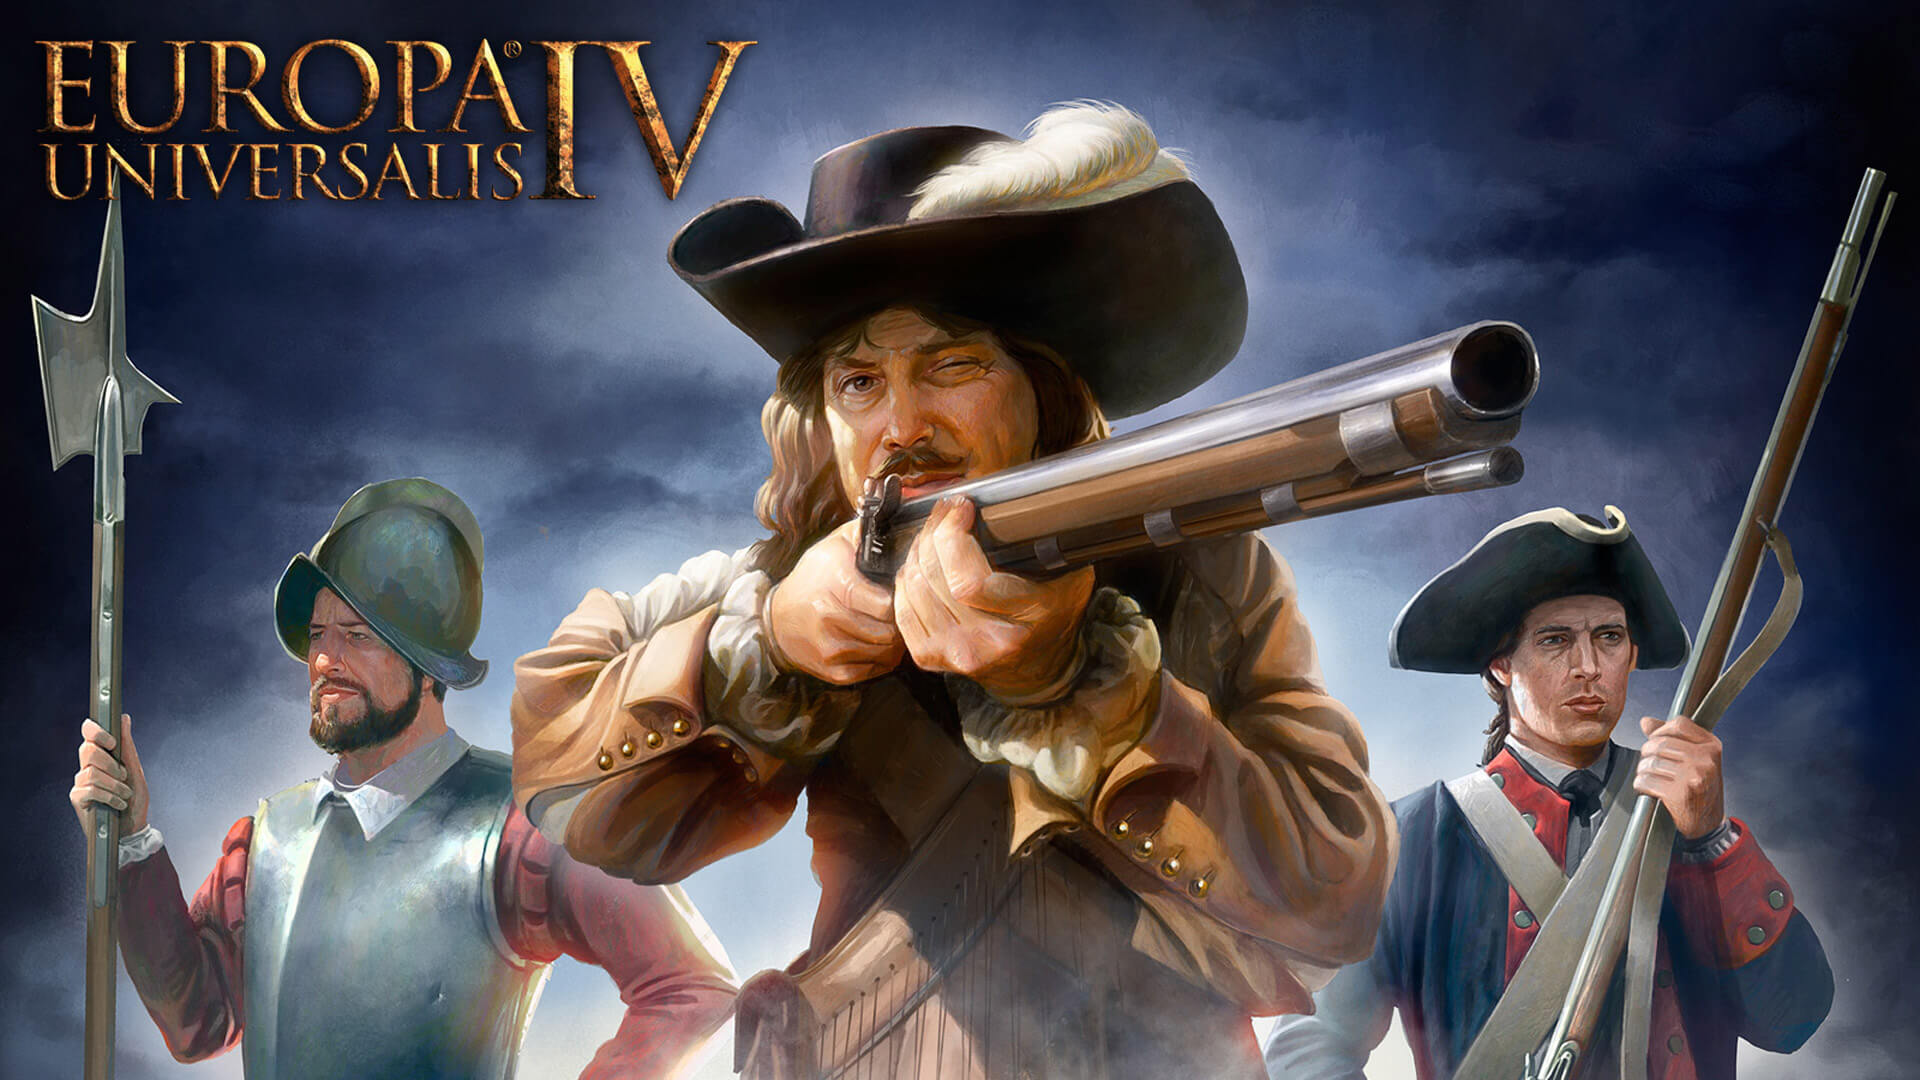 Europa Universalis IV: Rights of Man Review